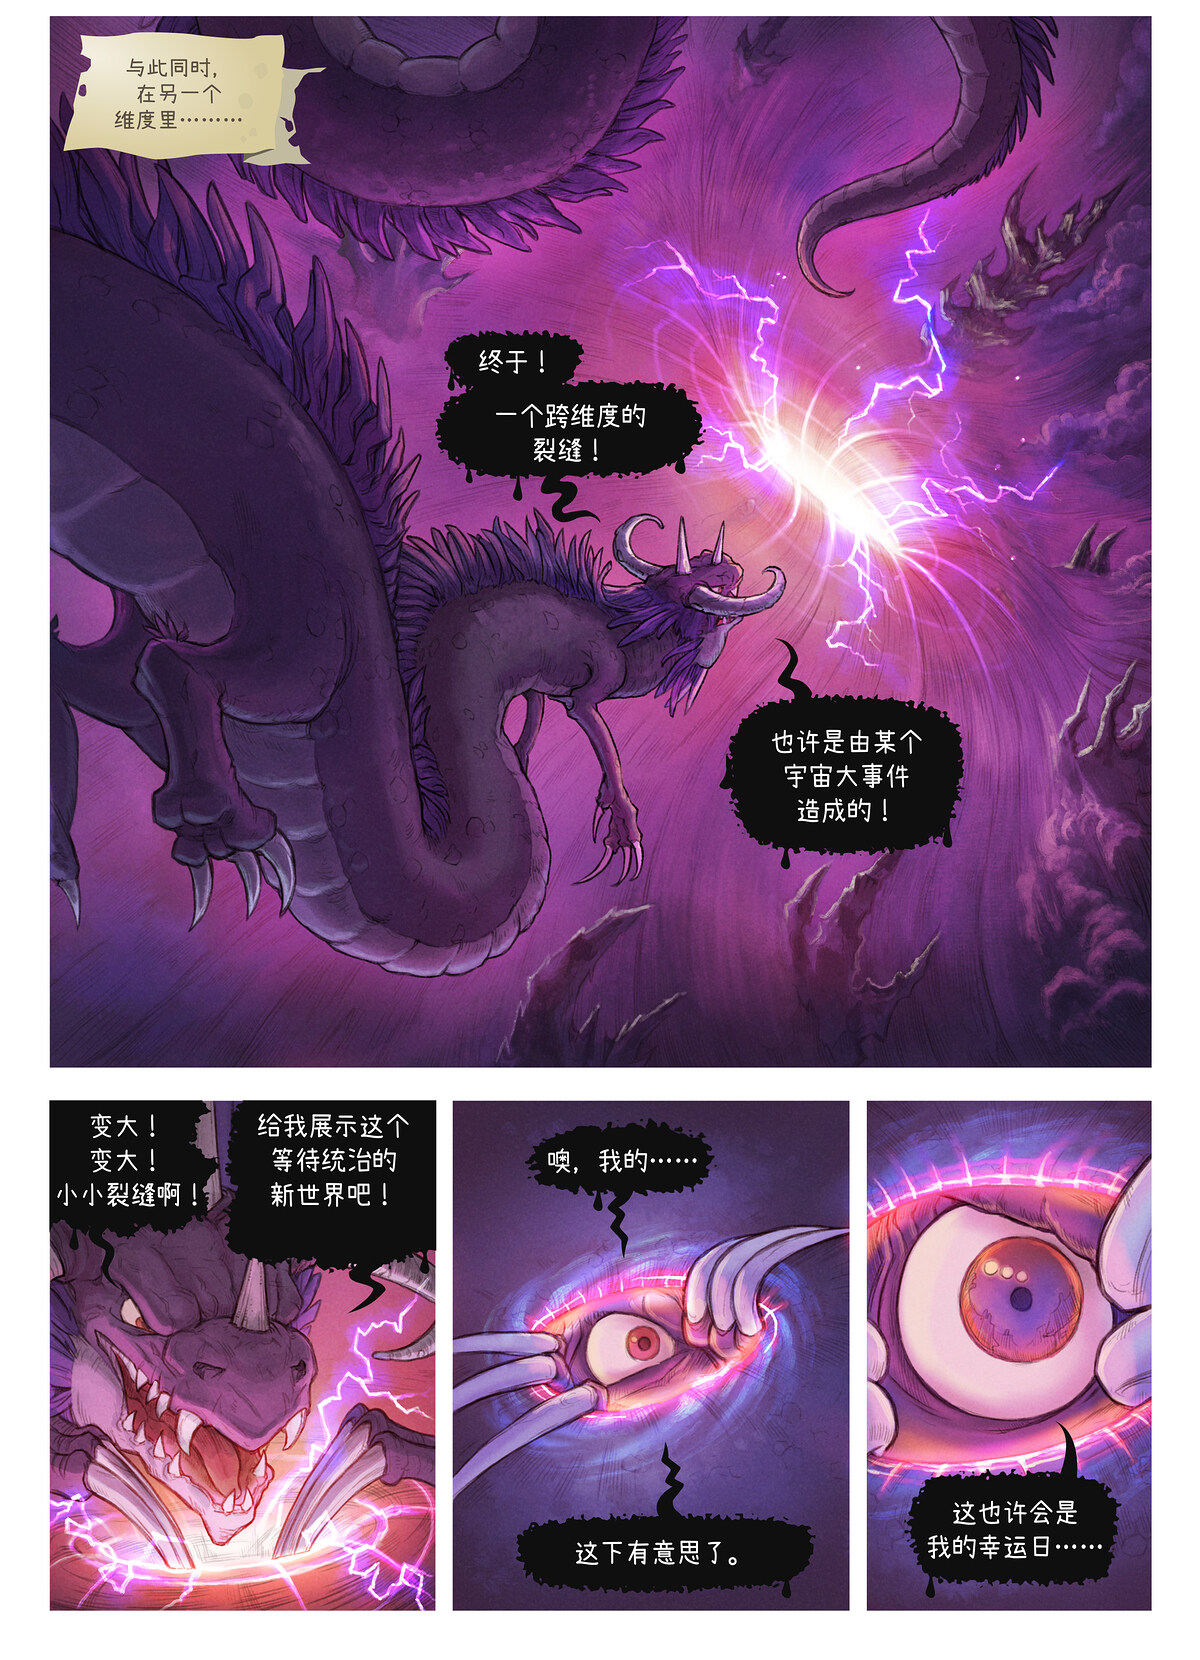 A webcomic page of Pepper&Carrot, 漫画全集 29 [cn], 页面 1